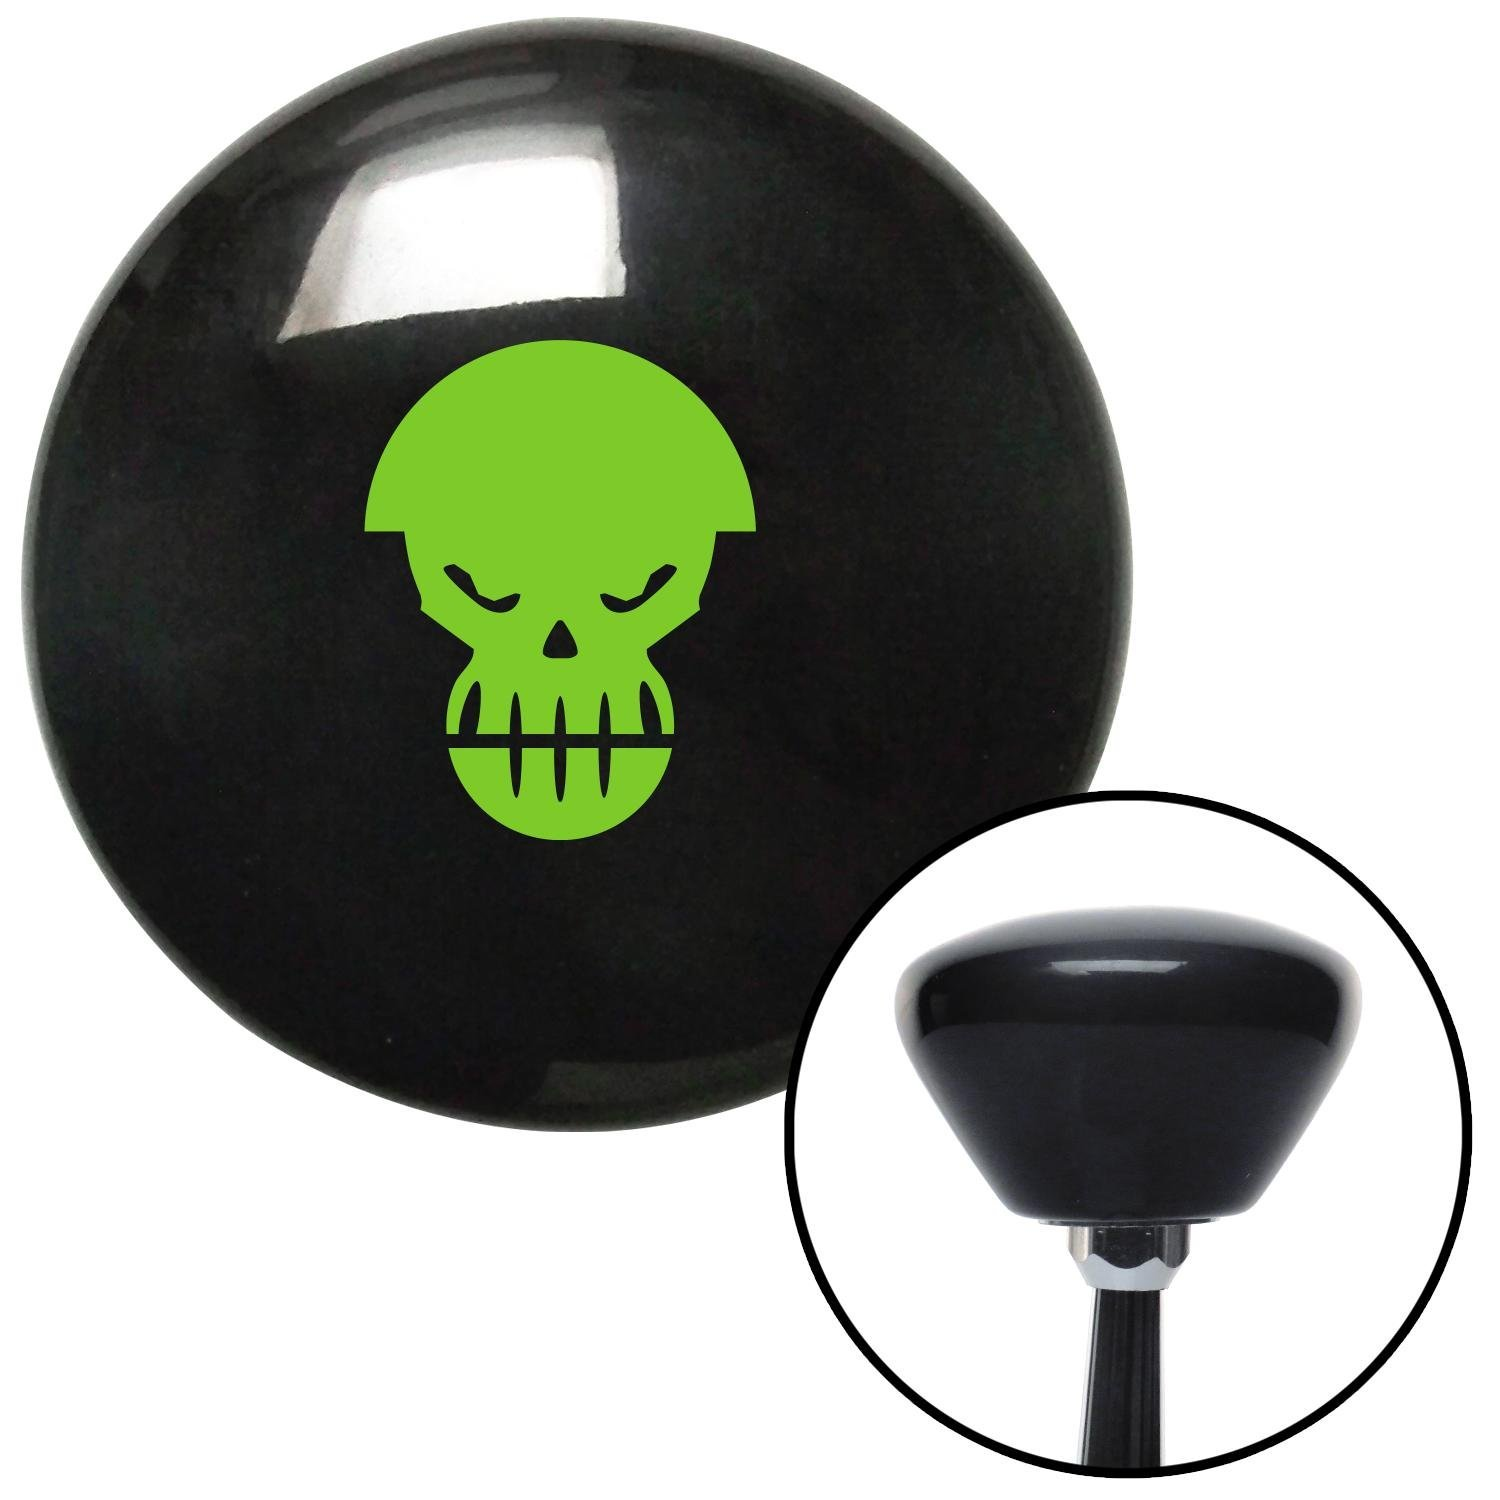 American Shifter 148920 Black Retro Shift Knob with M16 x 1.5 Insert Green Scary Skull